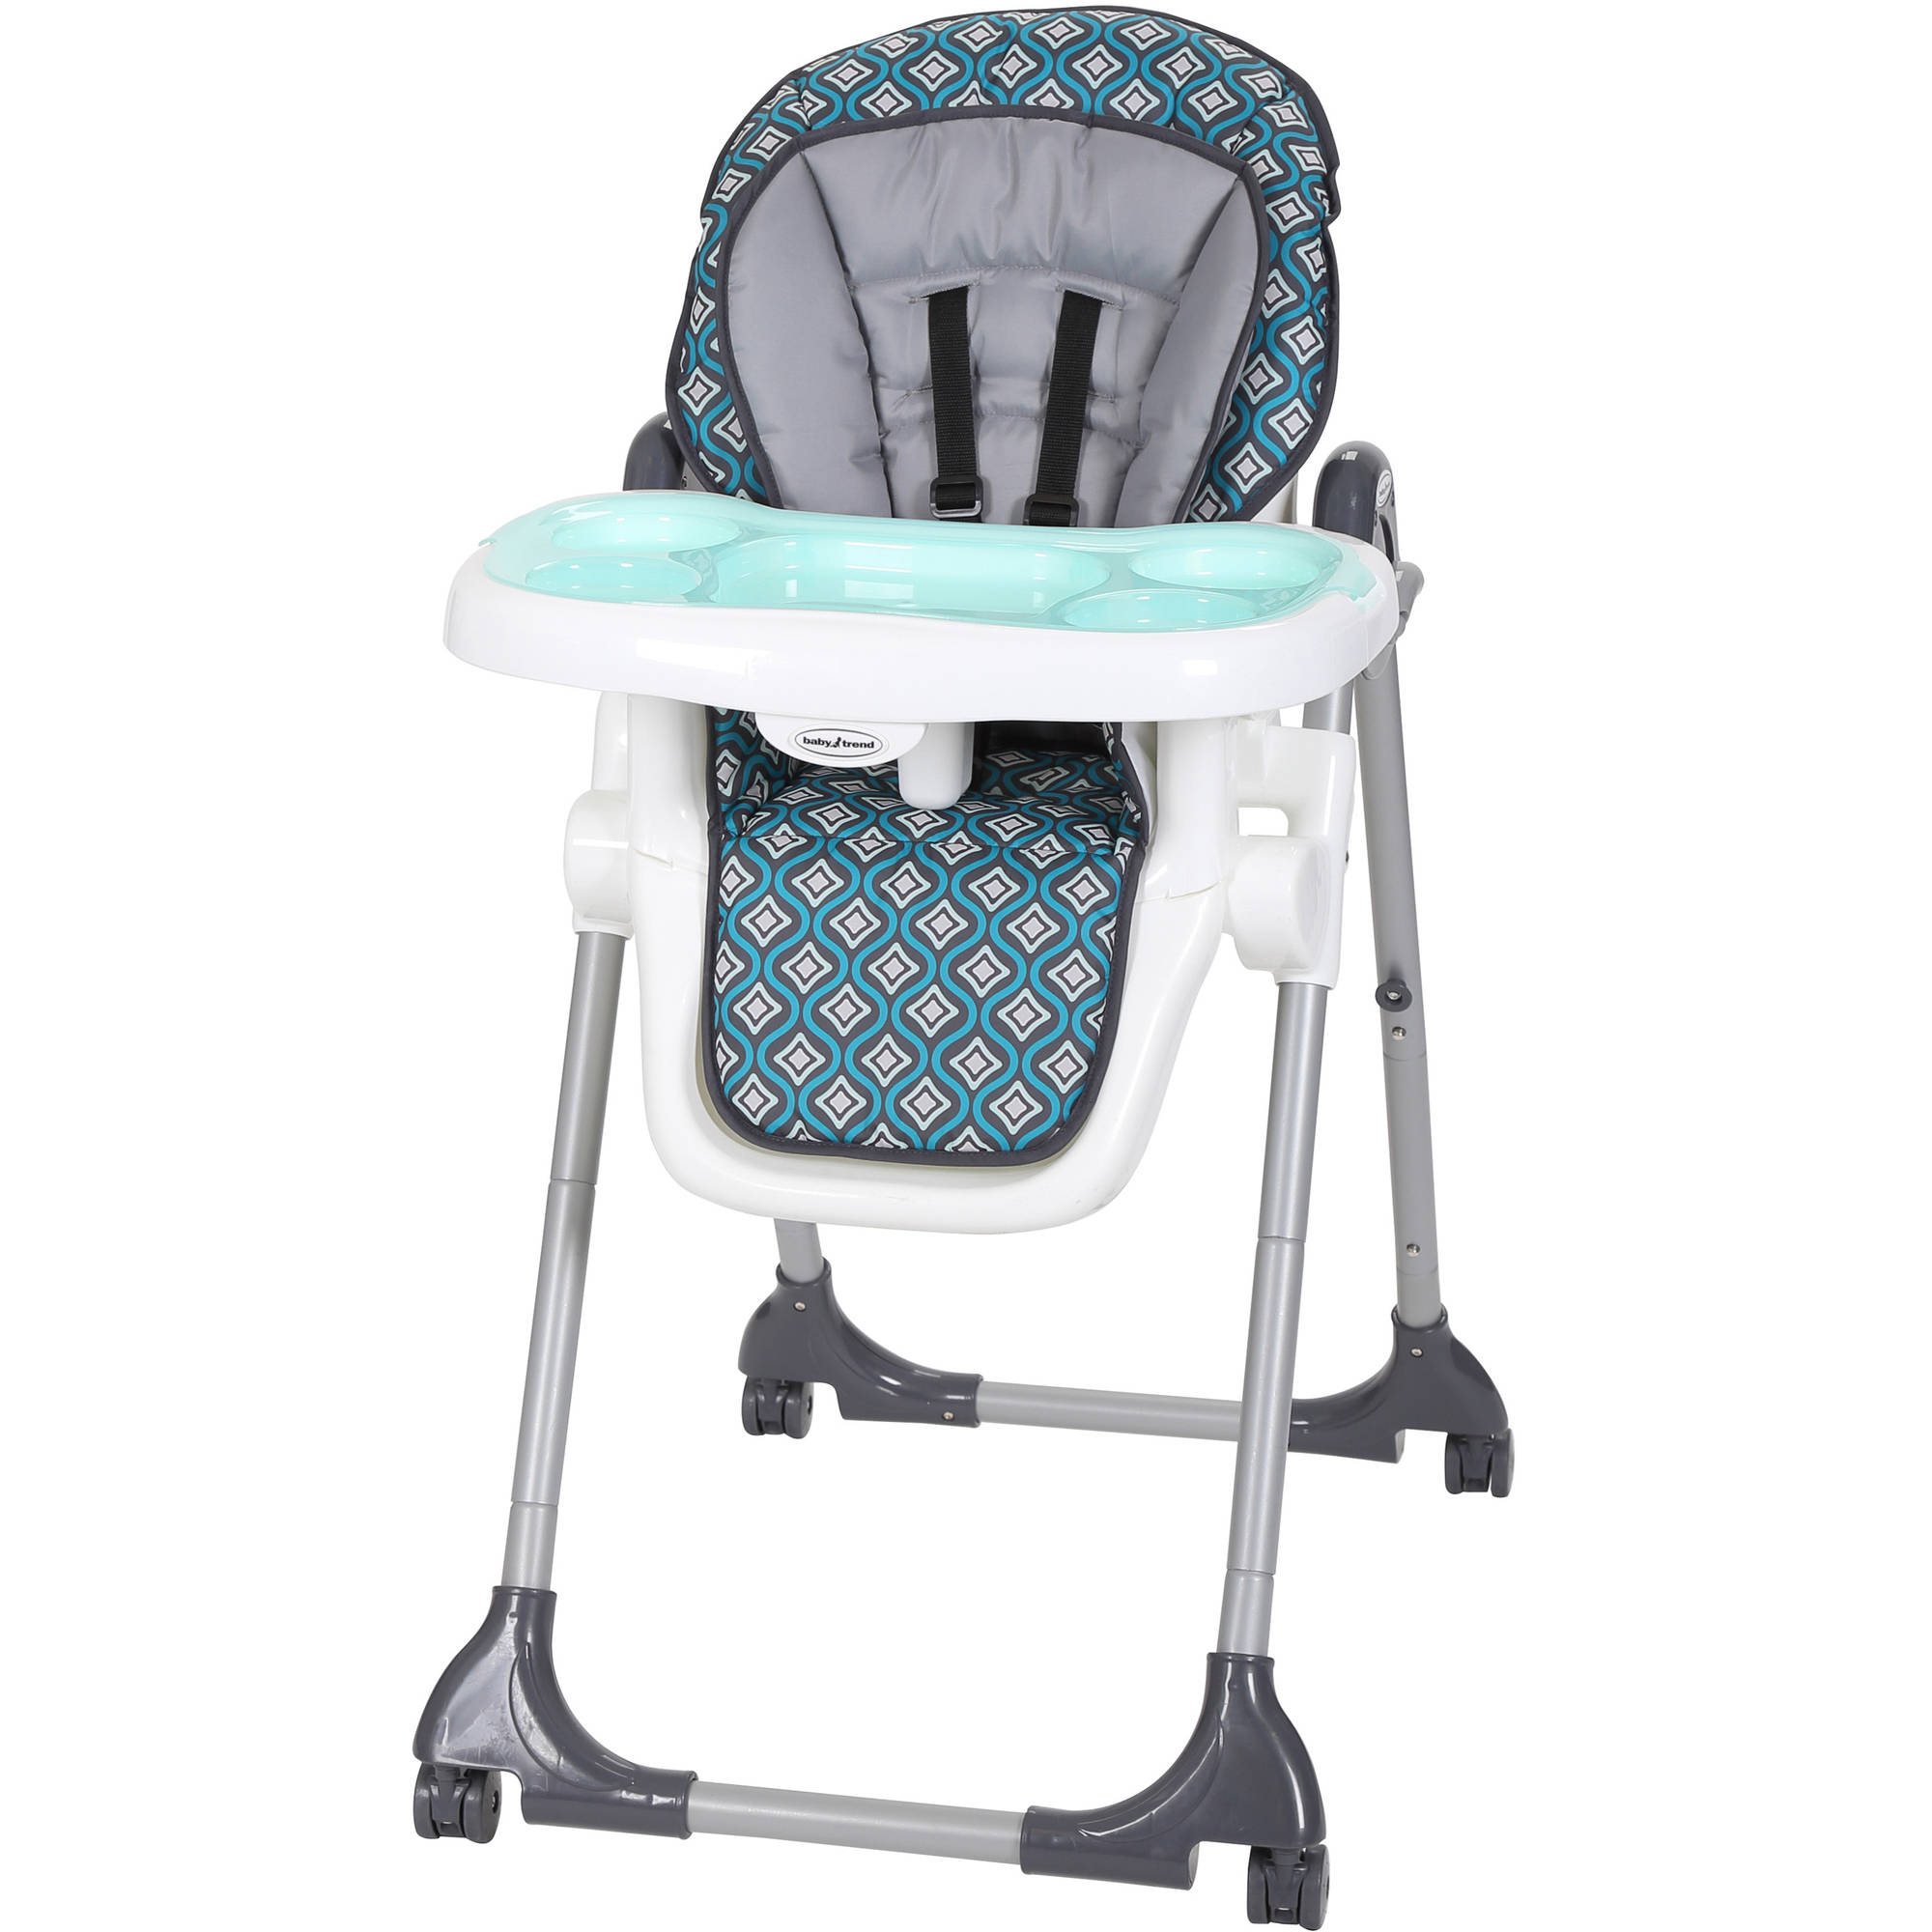 Baby Food Chair Baby Trend Deluxe 2 In 1 High Chair Diamond Wave